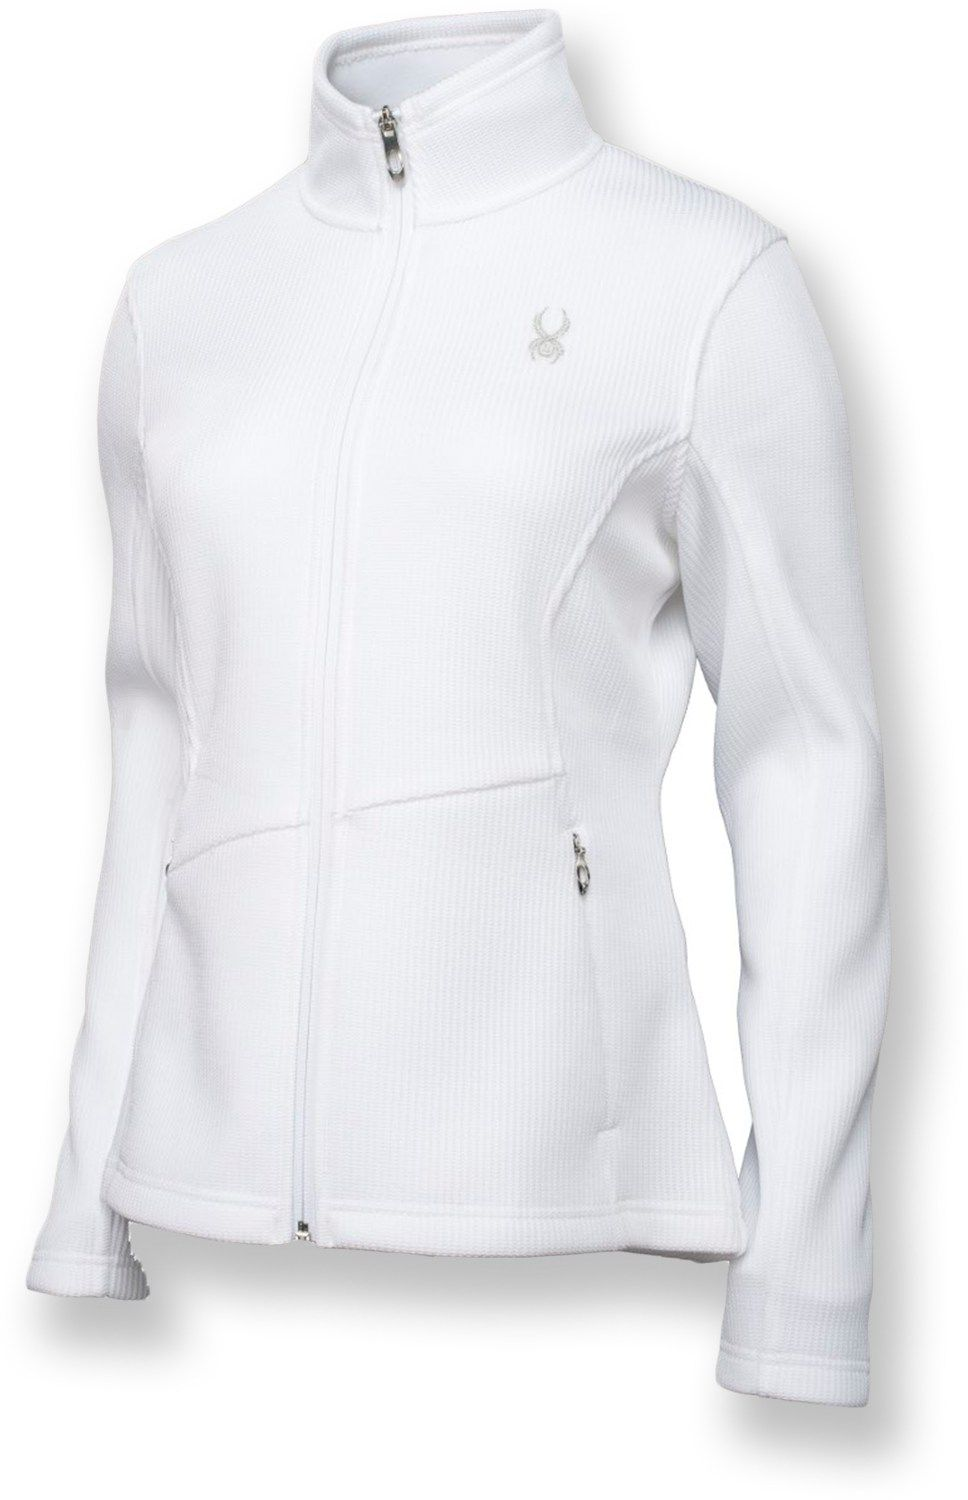 Spyder Female Endure Full Zip Sweater Jacket Womens Apparel